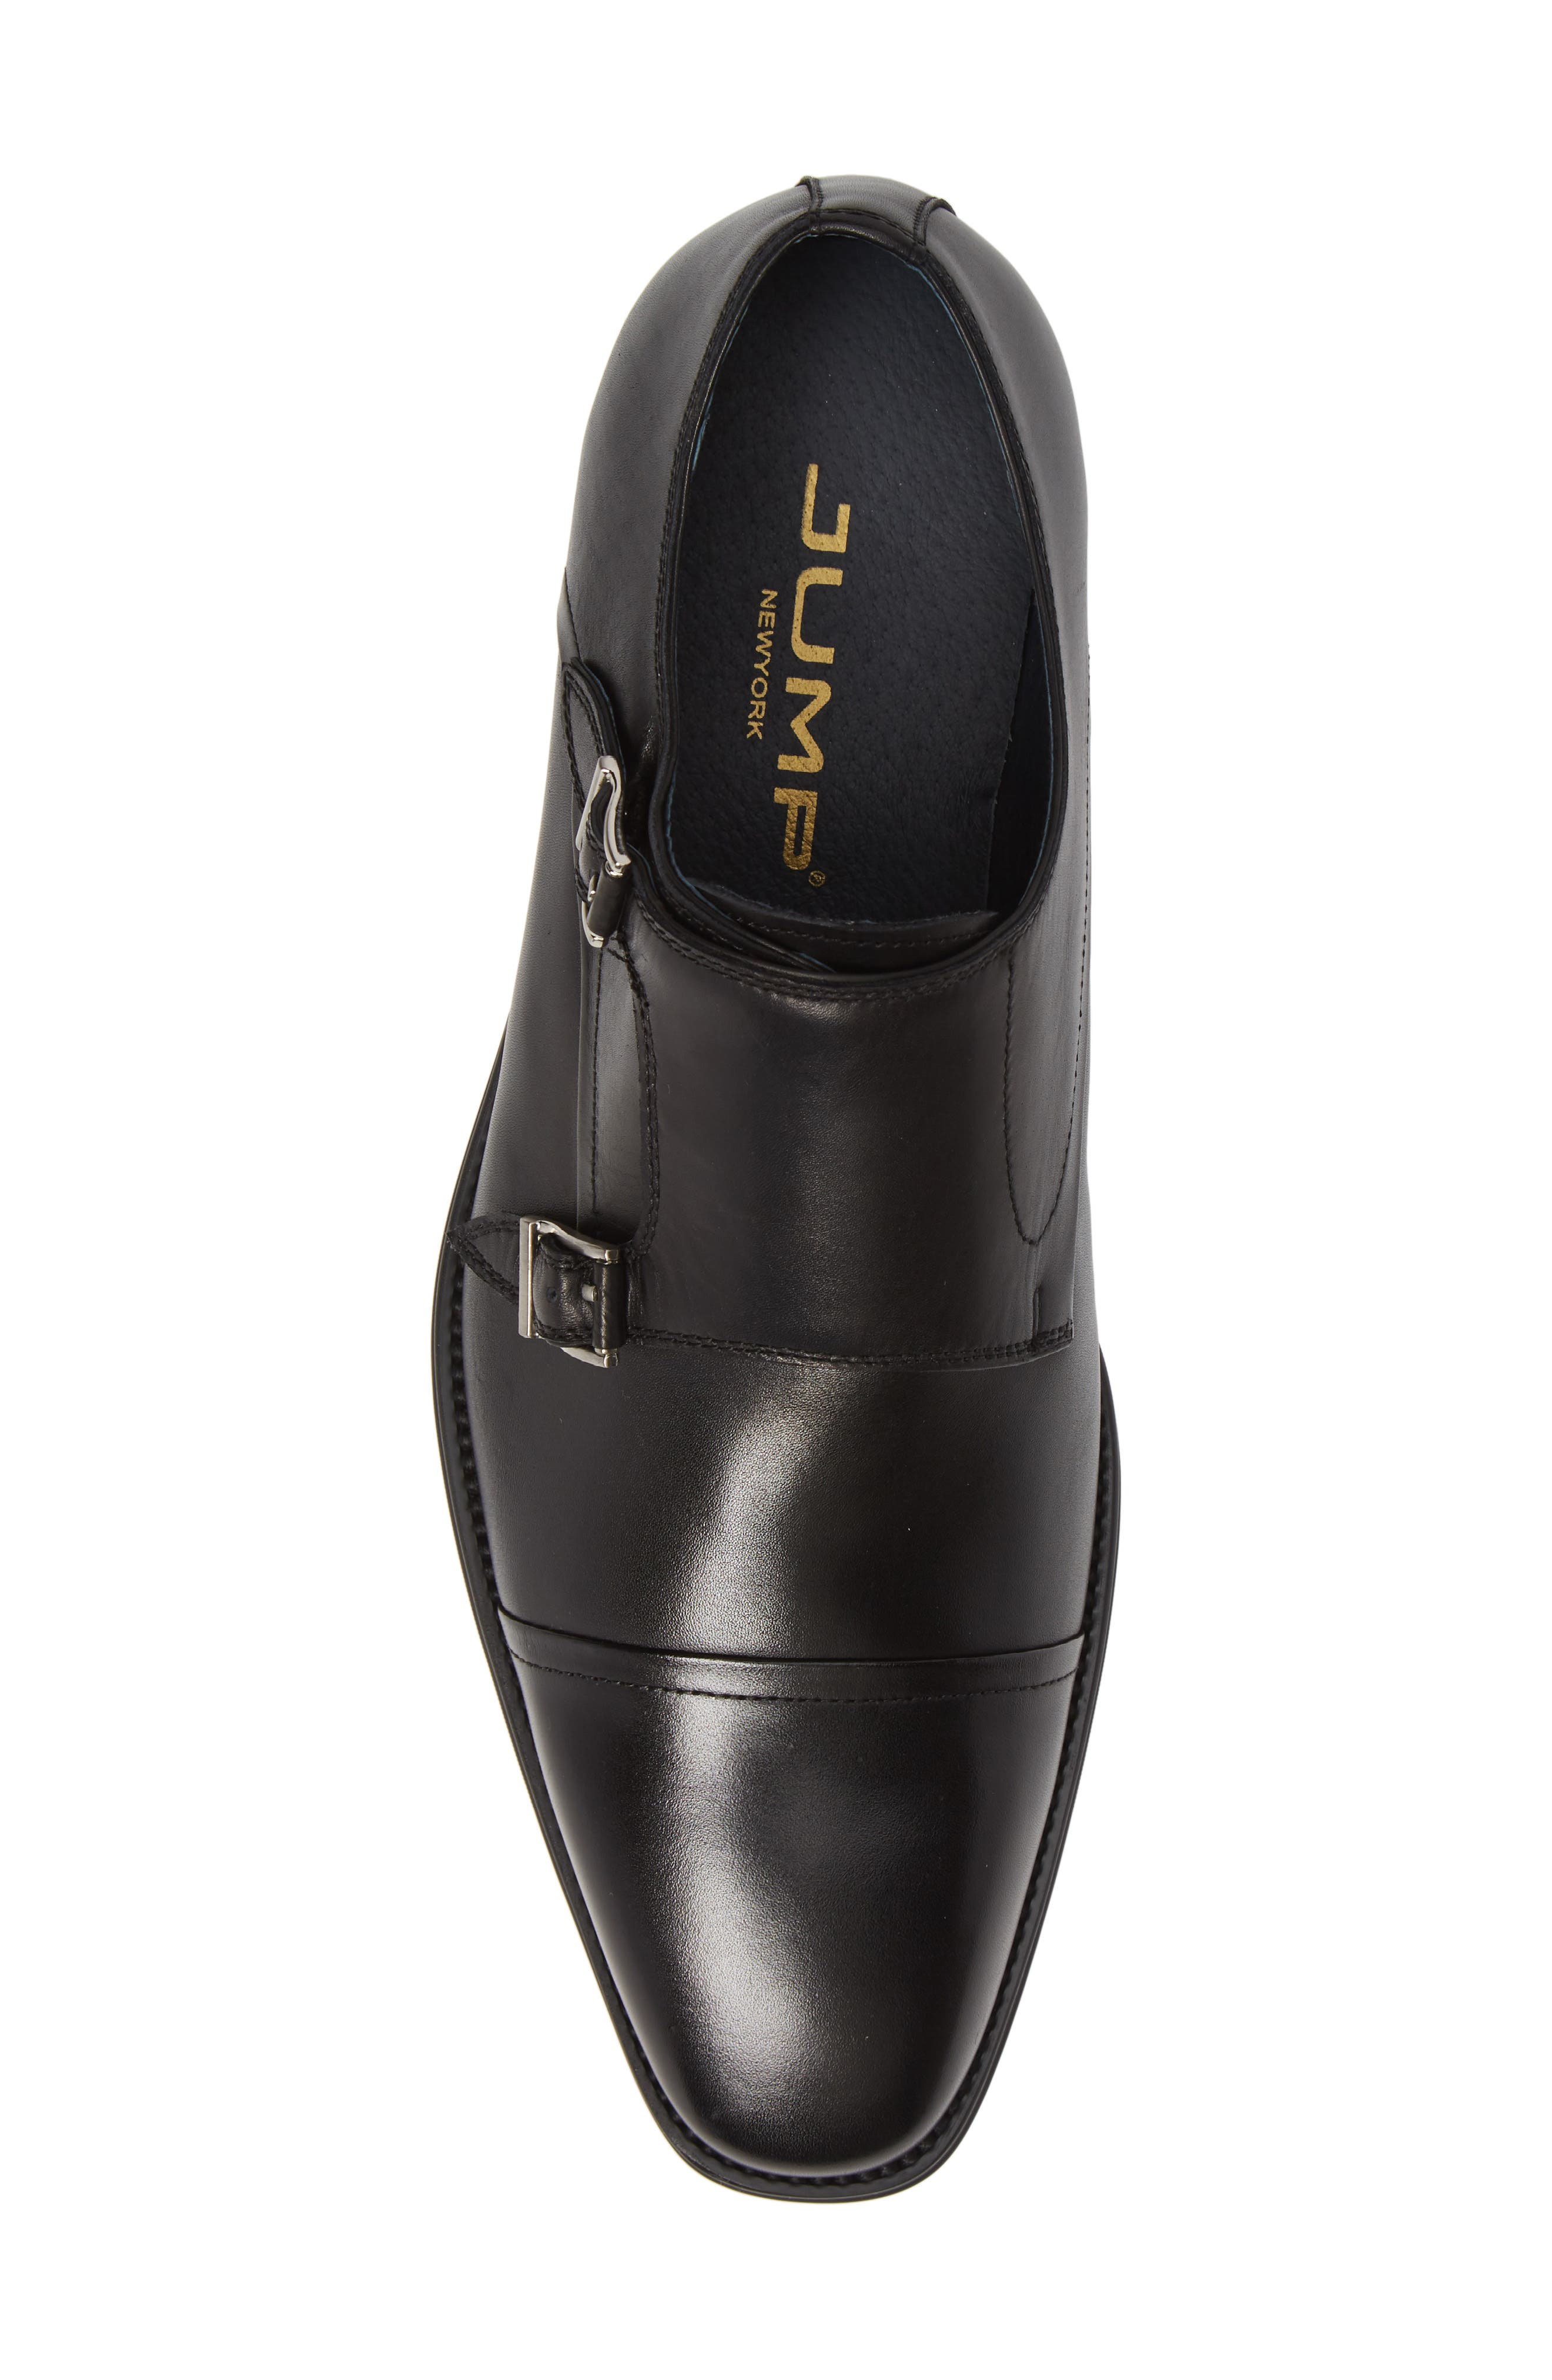 Mario Double Monk Strap Shoe,                             Alternate thumbnail 5, color,                             BLACK LEATHER